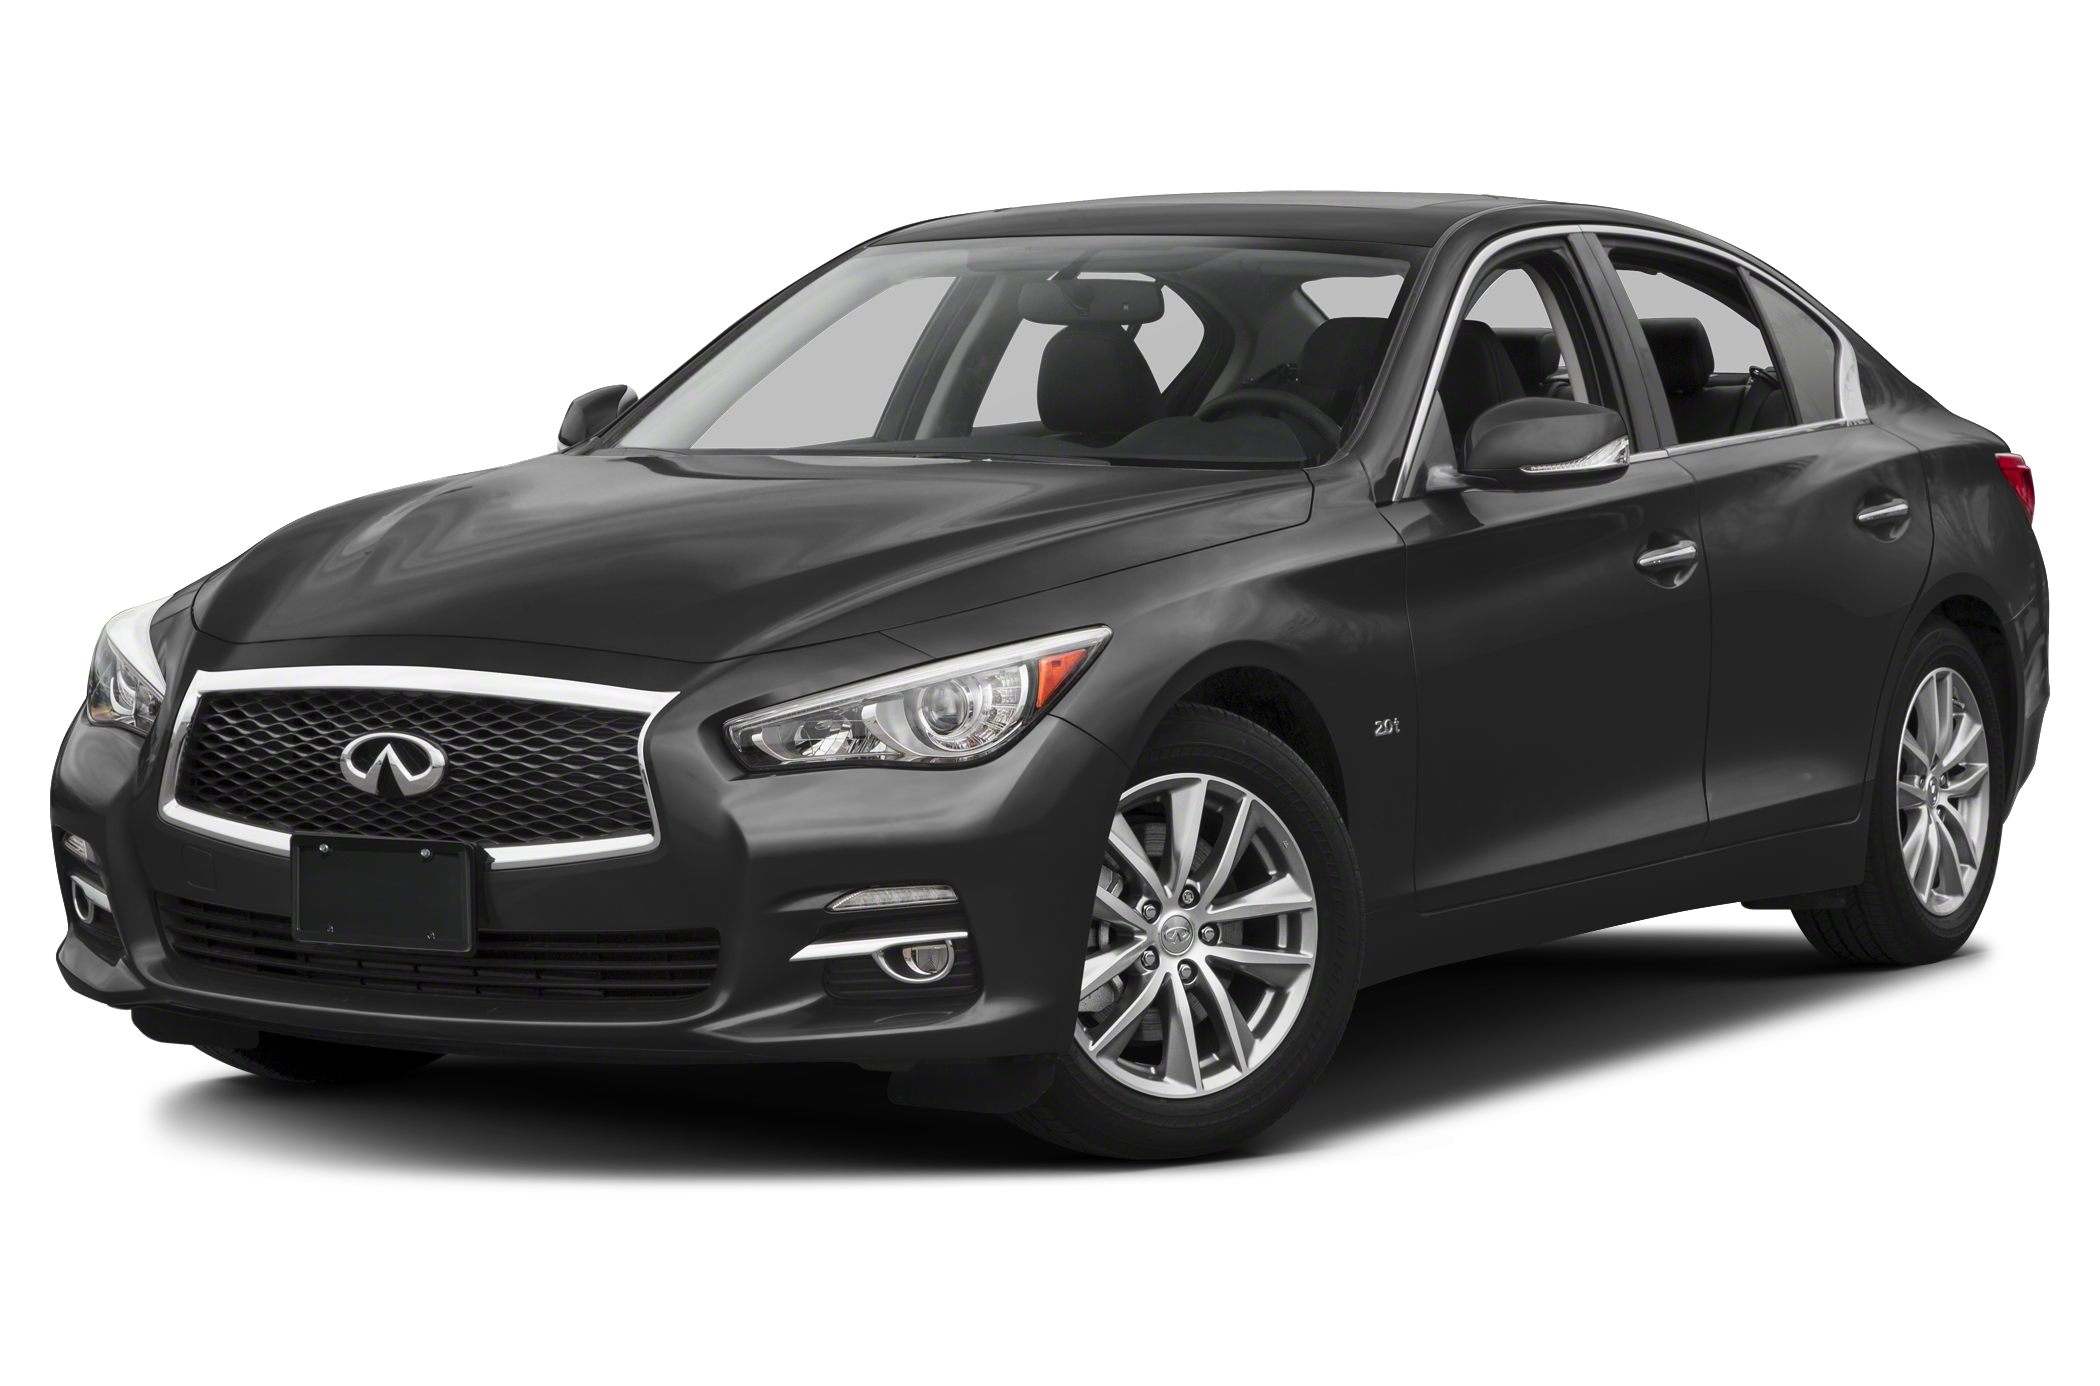 2017 Infiniti Q50 Pricing And Specs